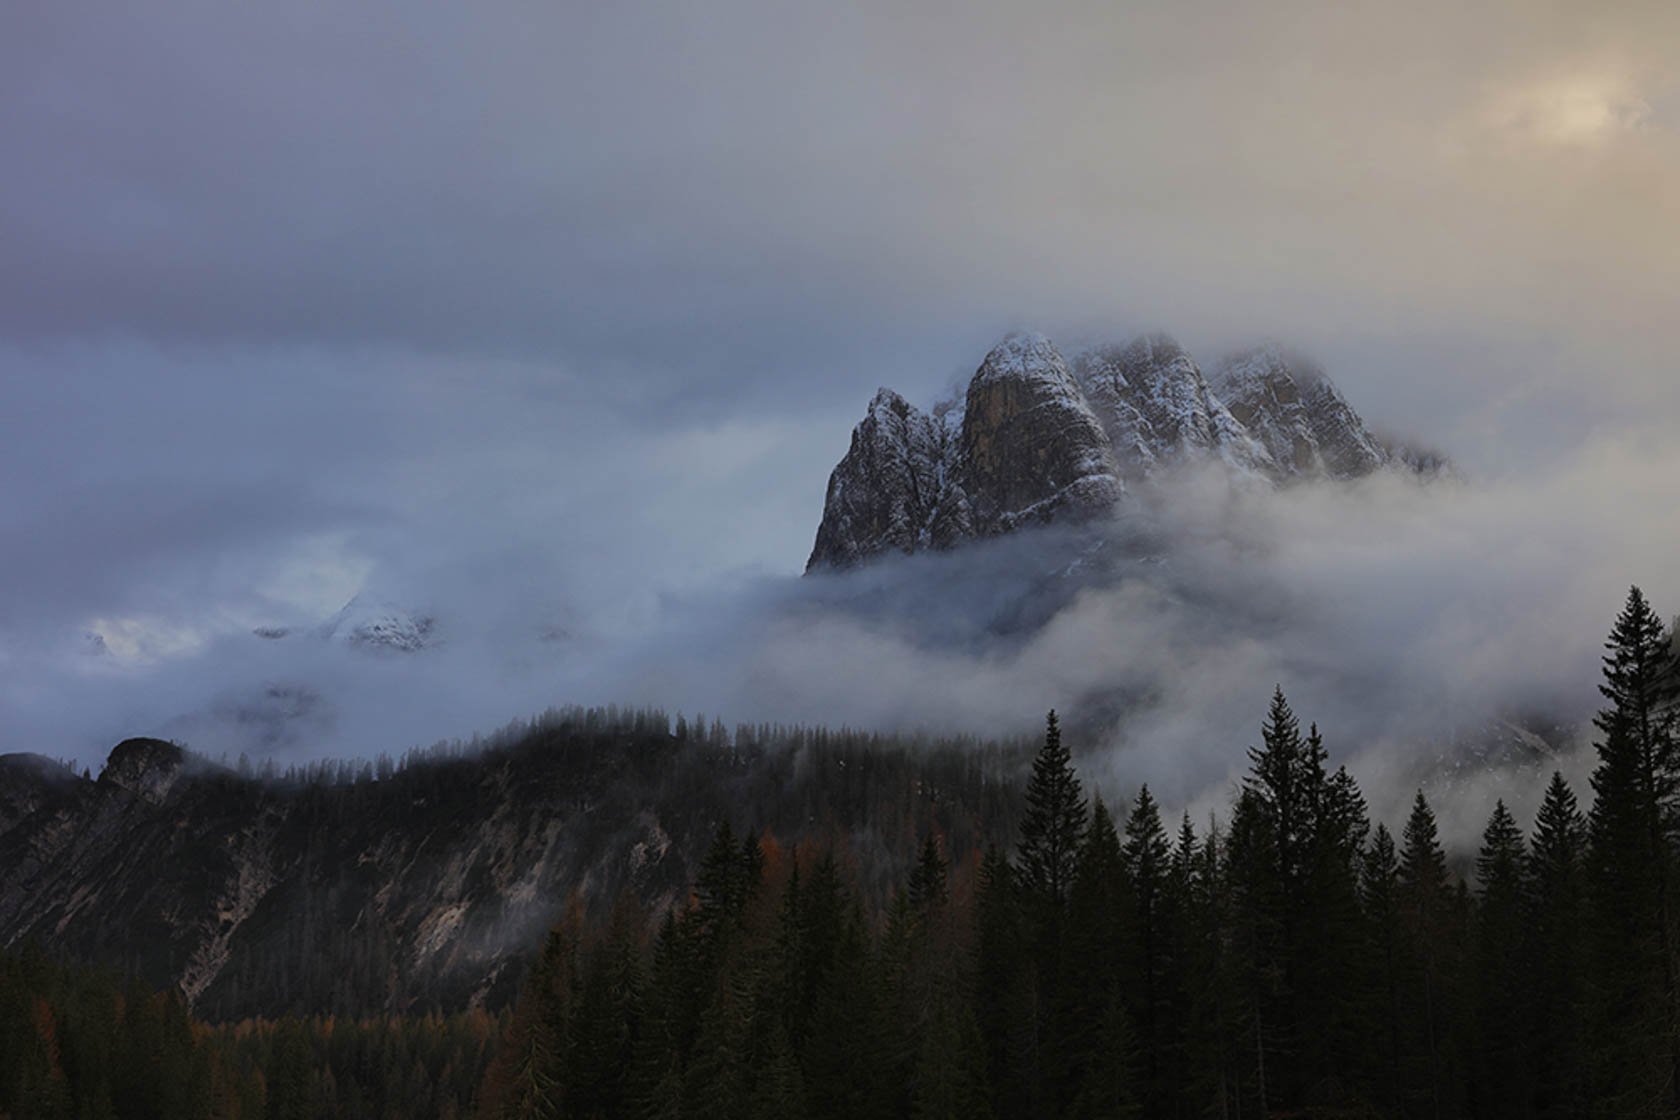 Mountain covered in mist taken with the Canon EOS 5DS digital SLR camera